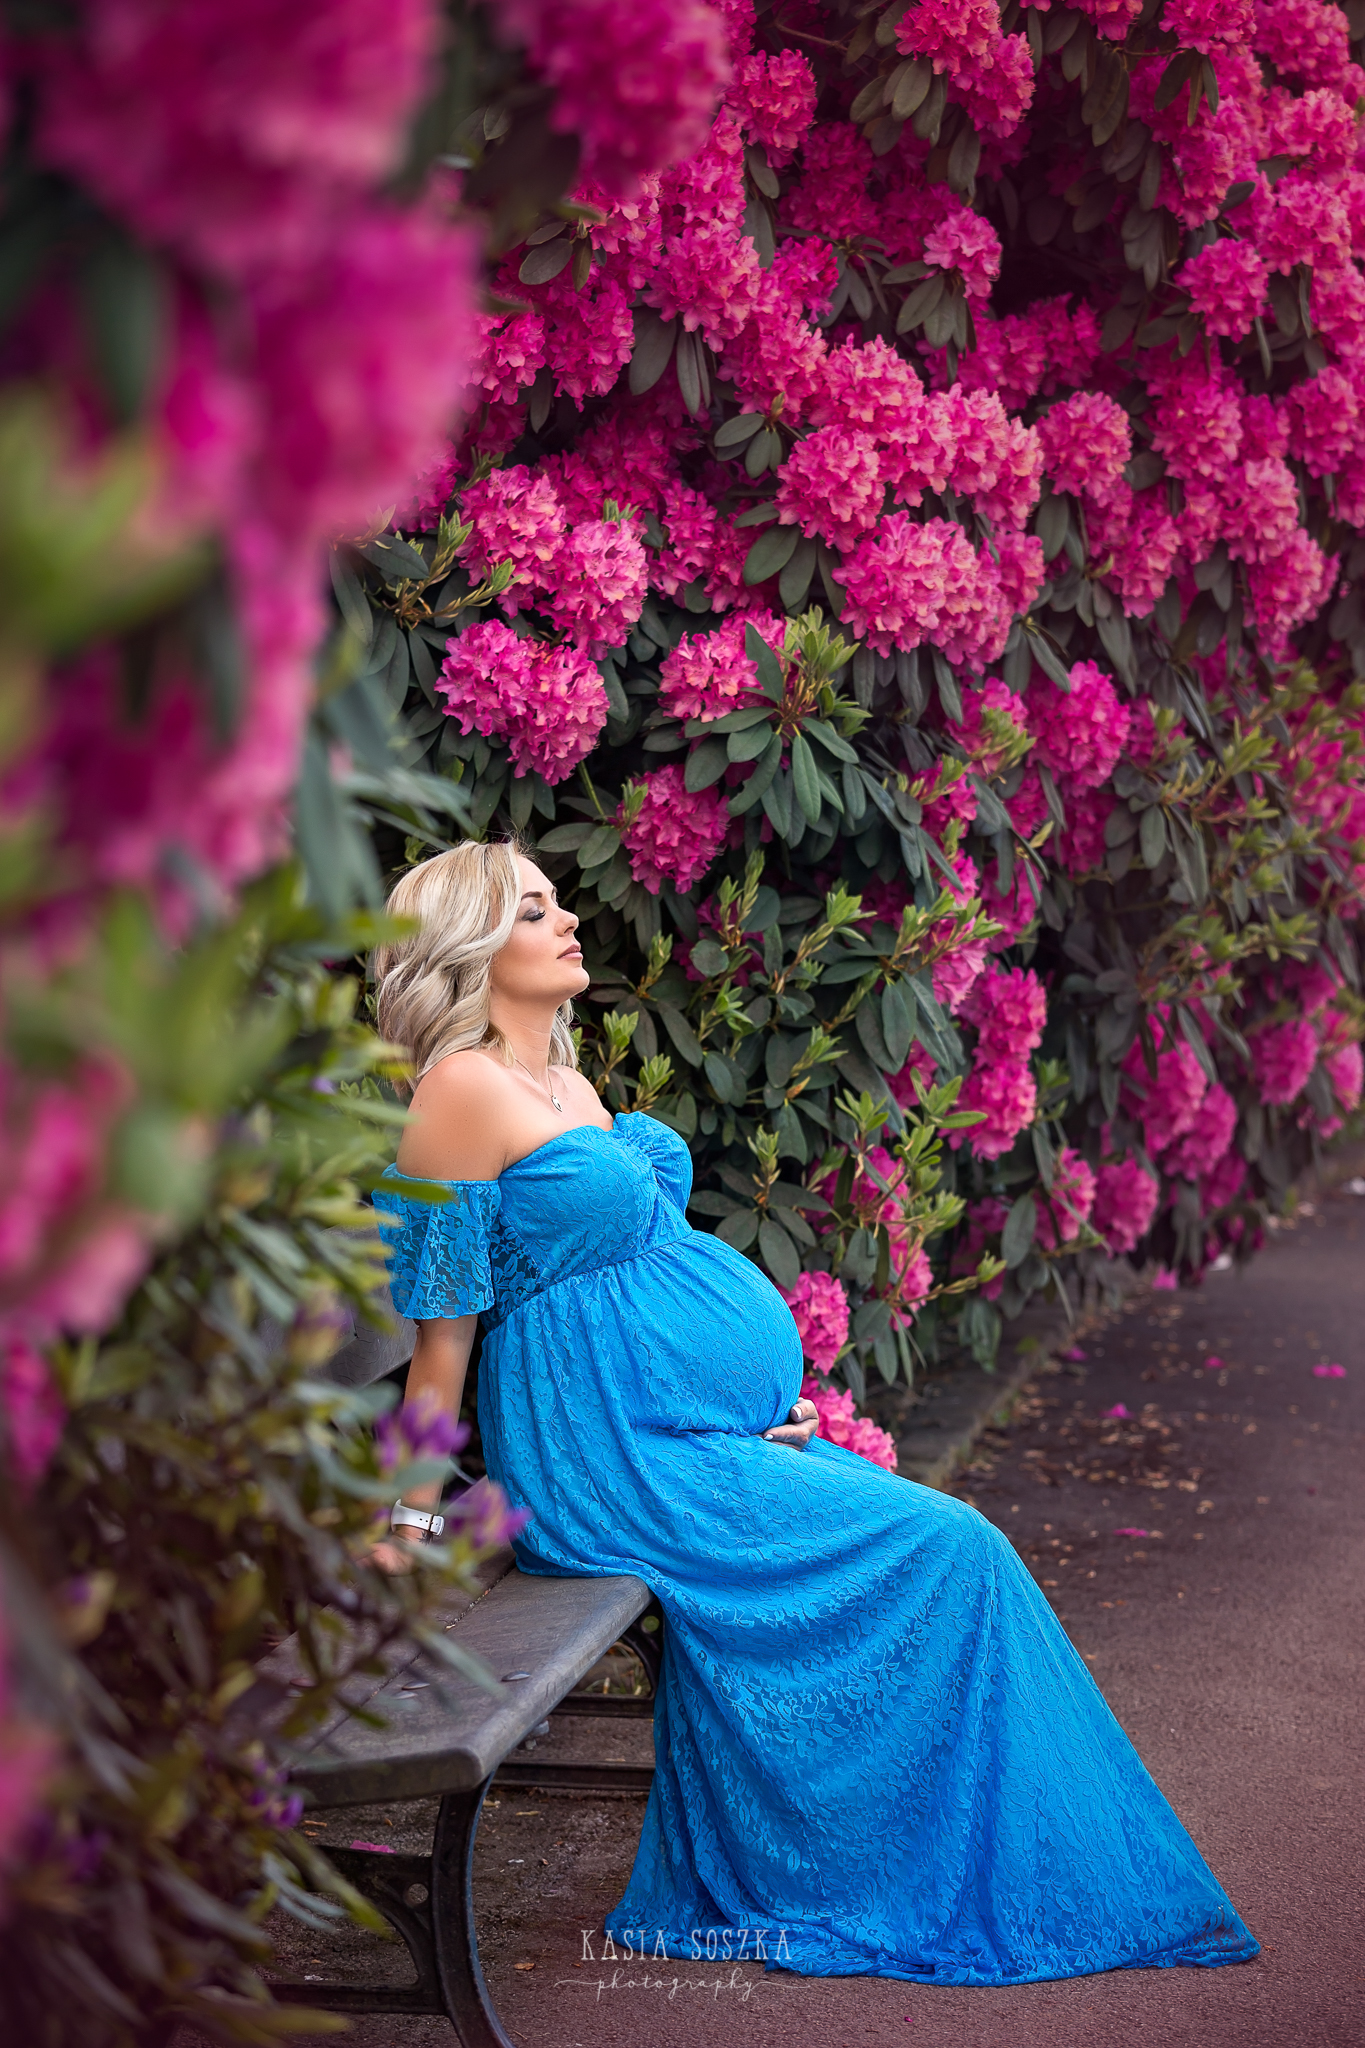 Leeds maternity photography: stunning blond mum-to-be in a long blue dress resting on a bench in a beautiful spring garden.